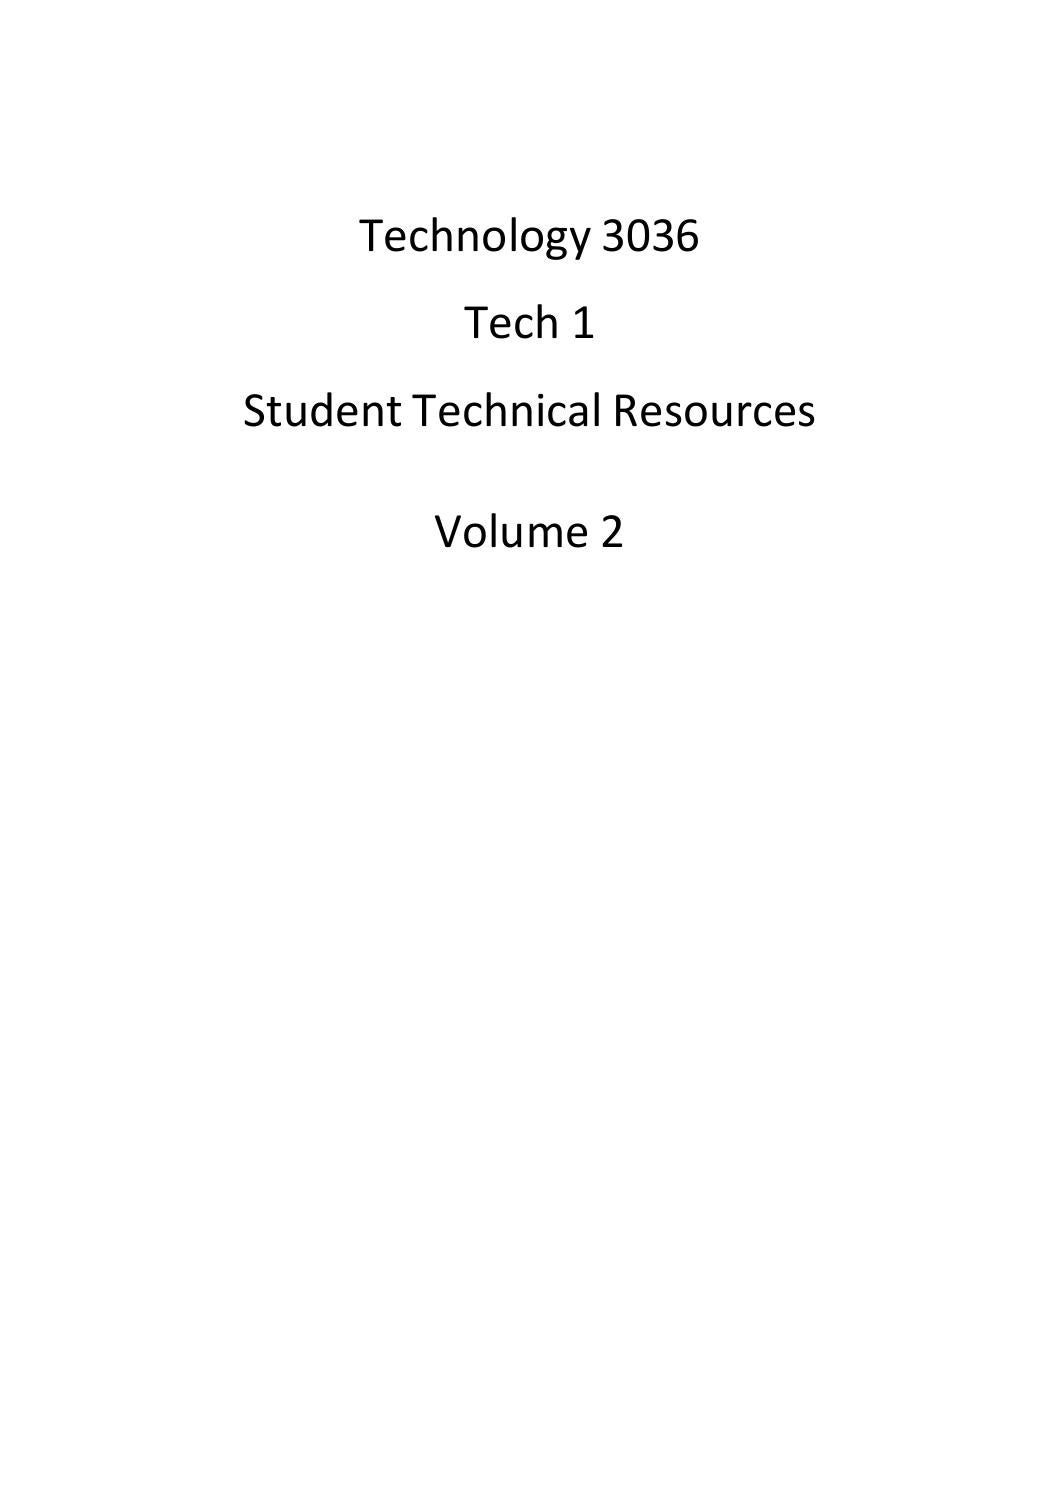 LSA Technology report volume 2 by Leicester School of Architecture